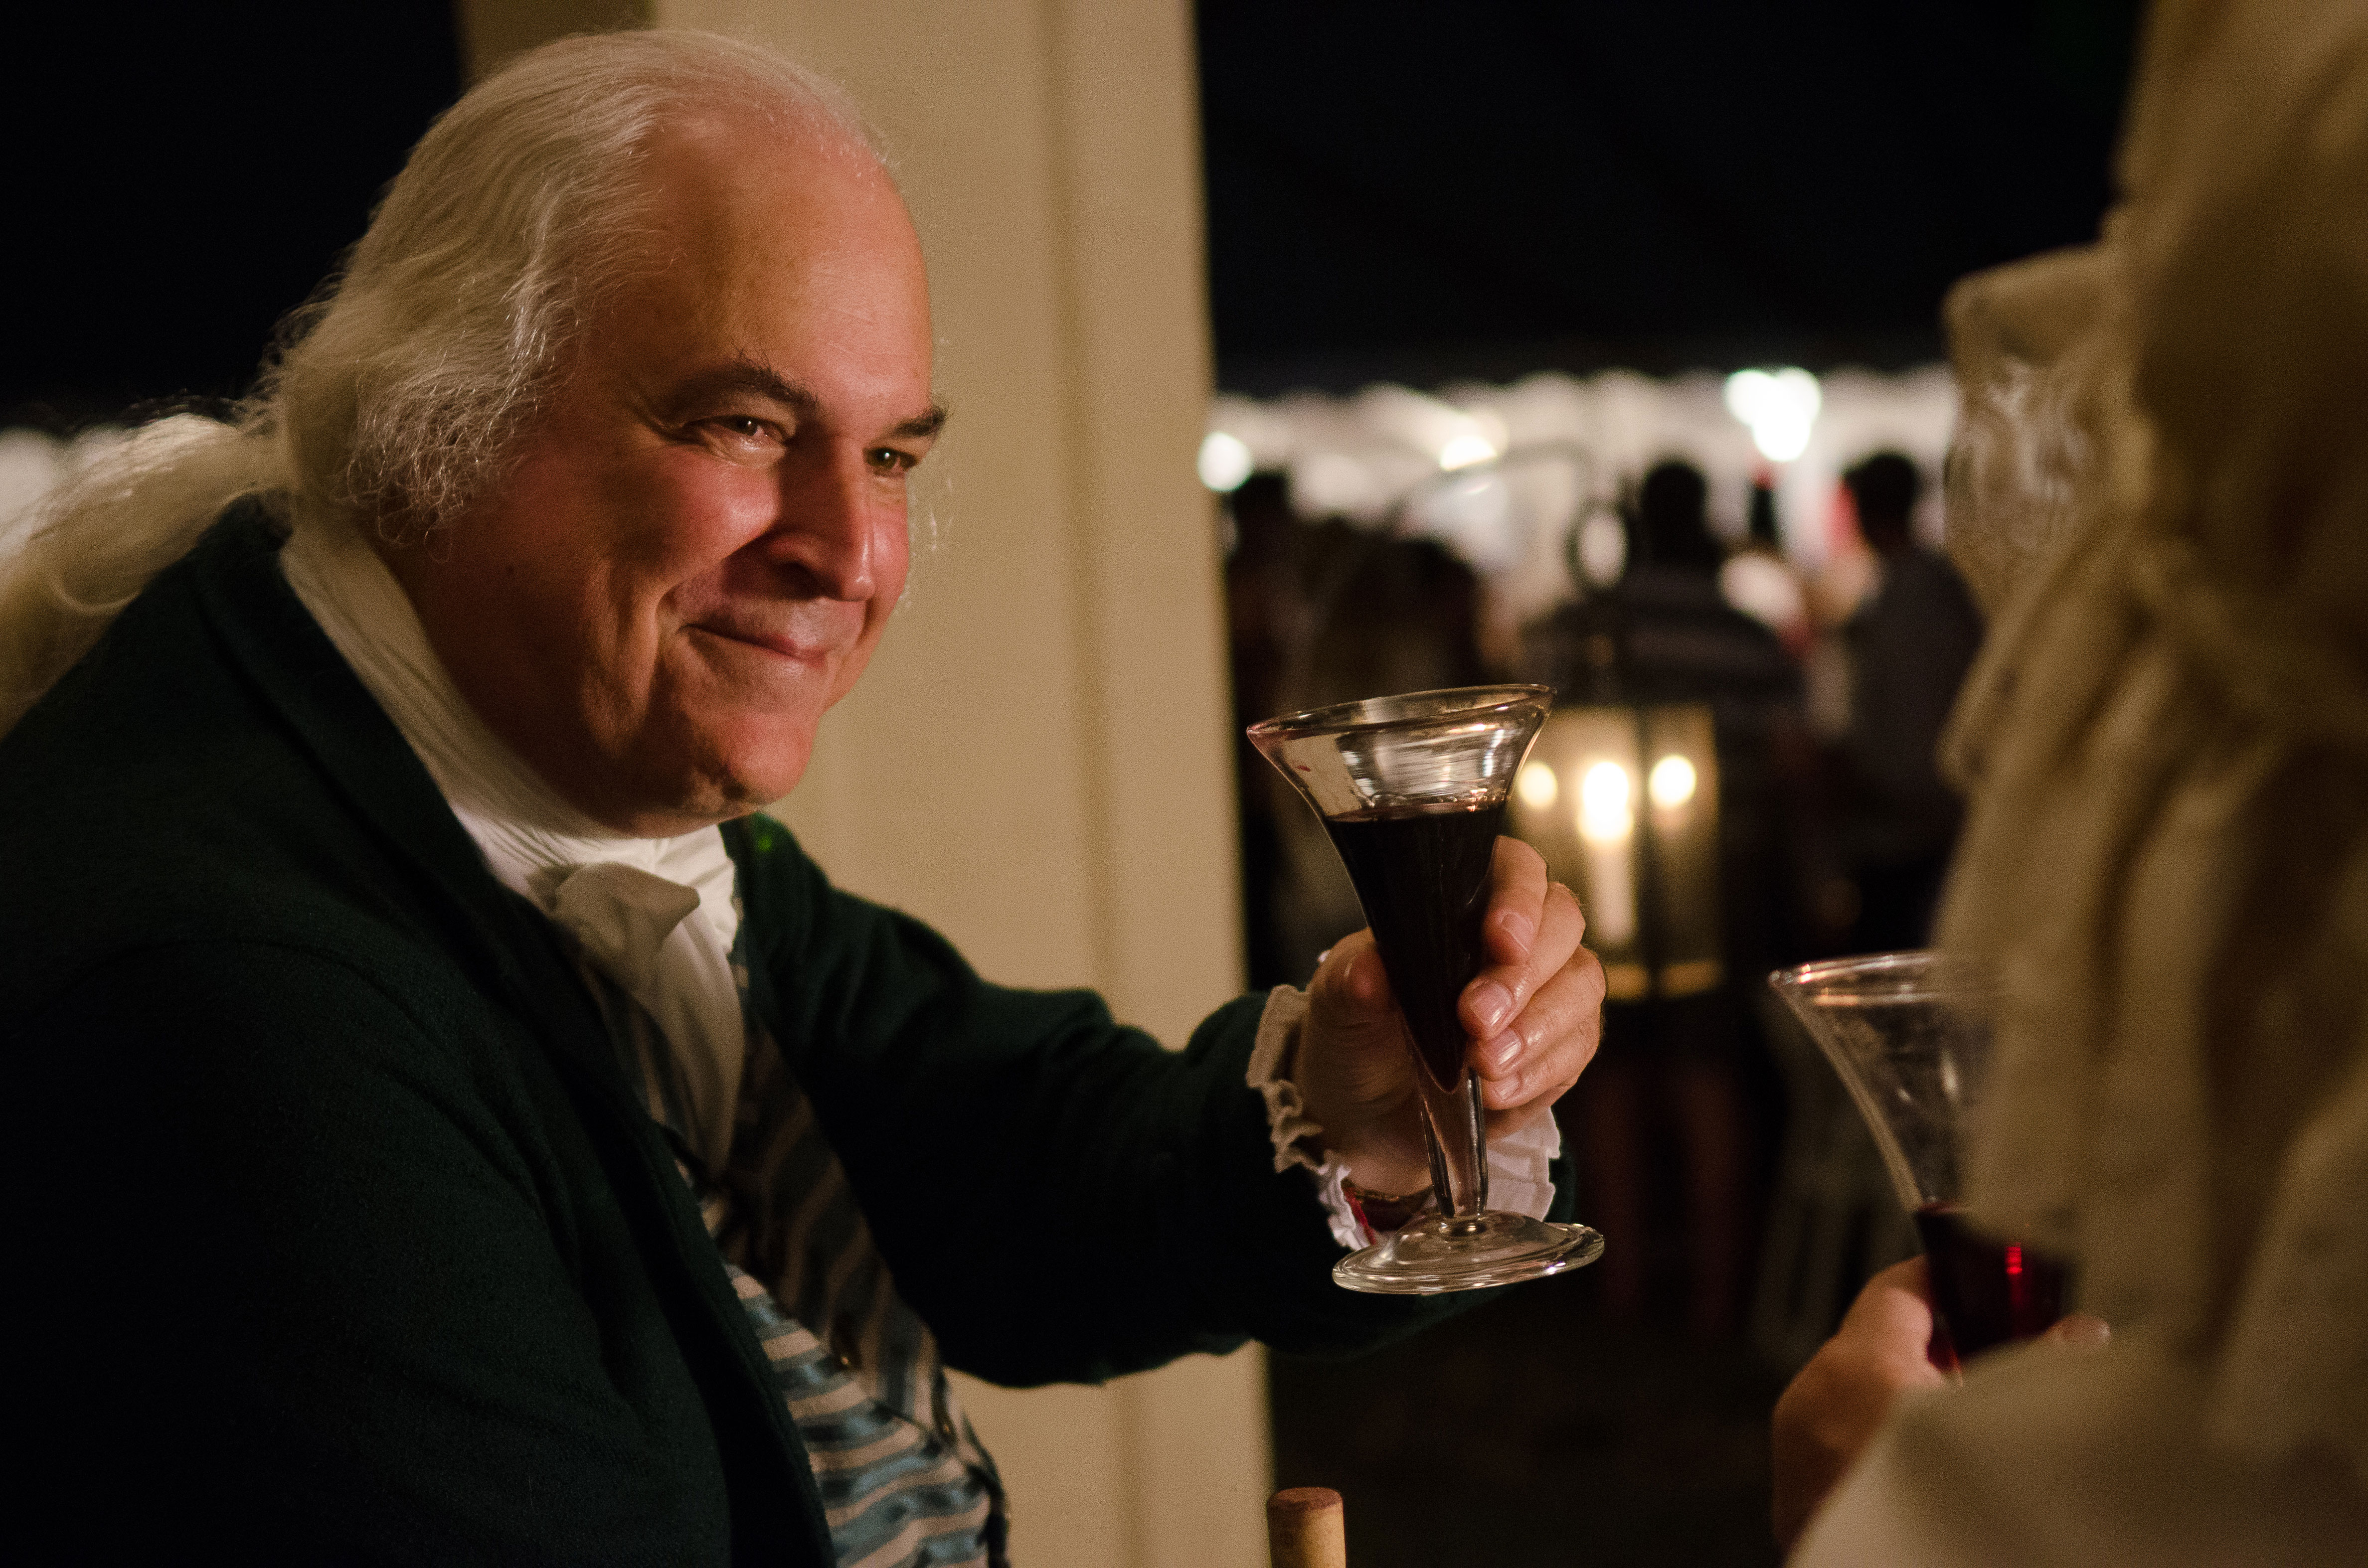 Celebrate the history of wine in Virginia at the home of George Washington with the Fall Wine Festival & Sunset Tour at Mount Vernon.